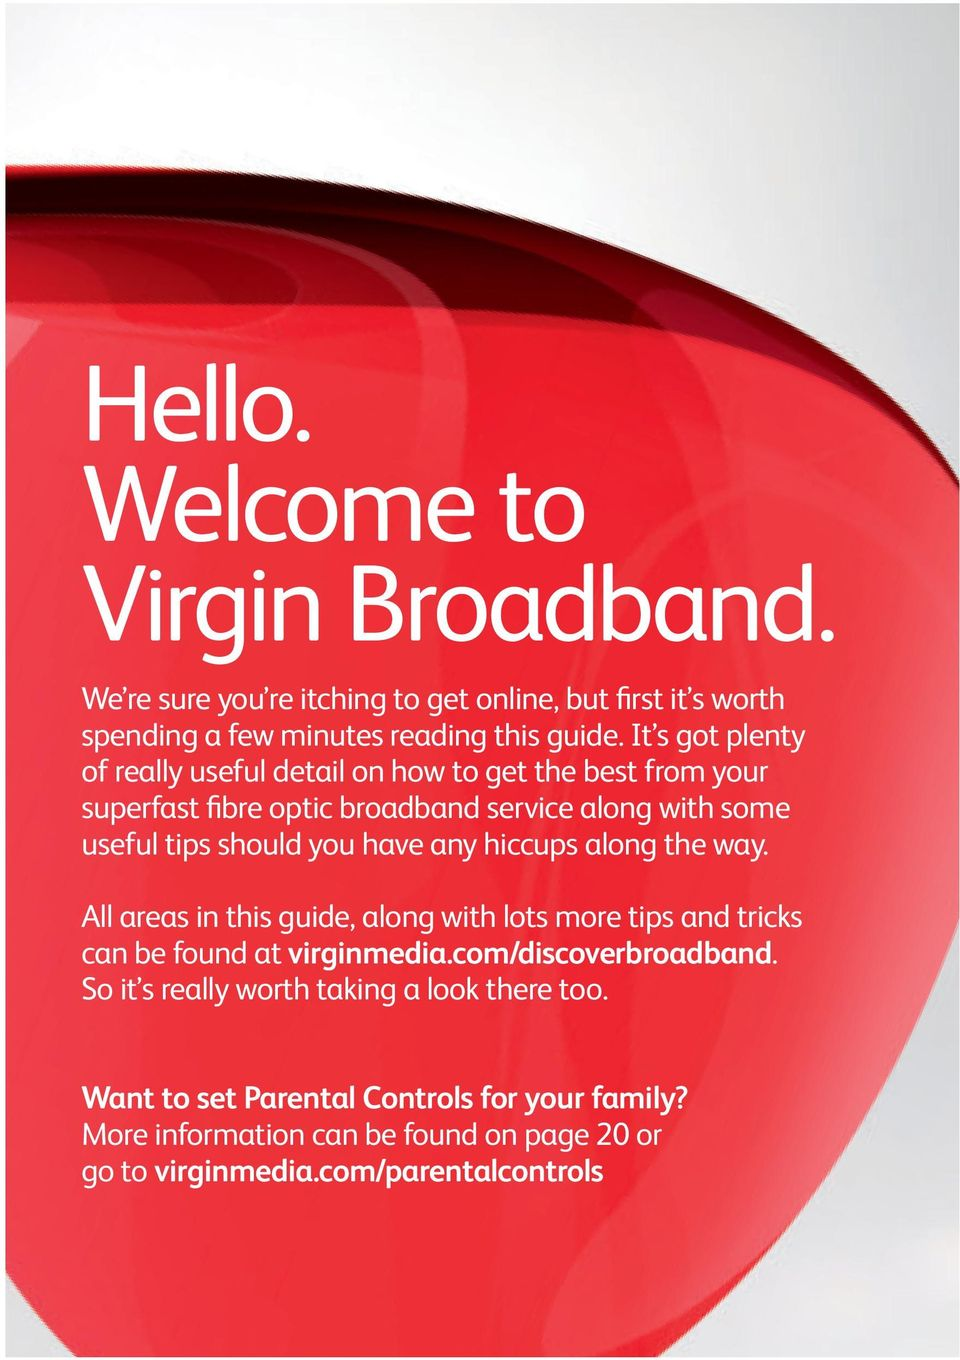 have any hiccups along the way. All areas in this guide, along with lots more tips and tricks can be found at virginmedia.com/discoverbroadband.